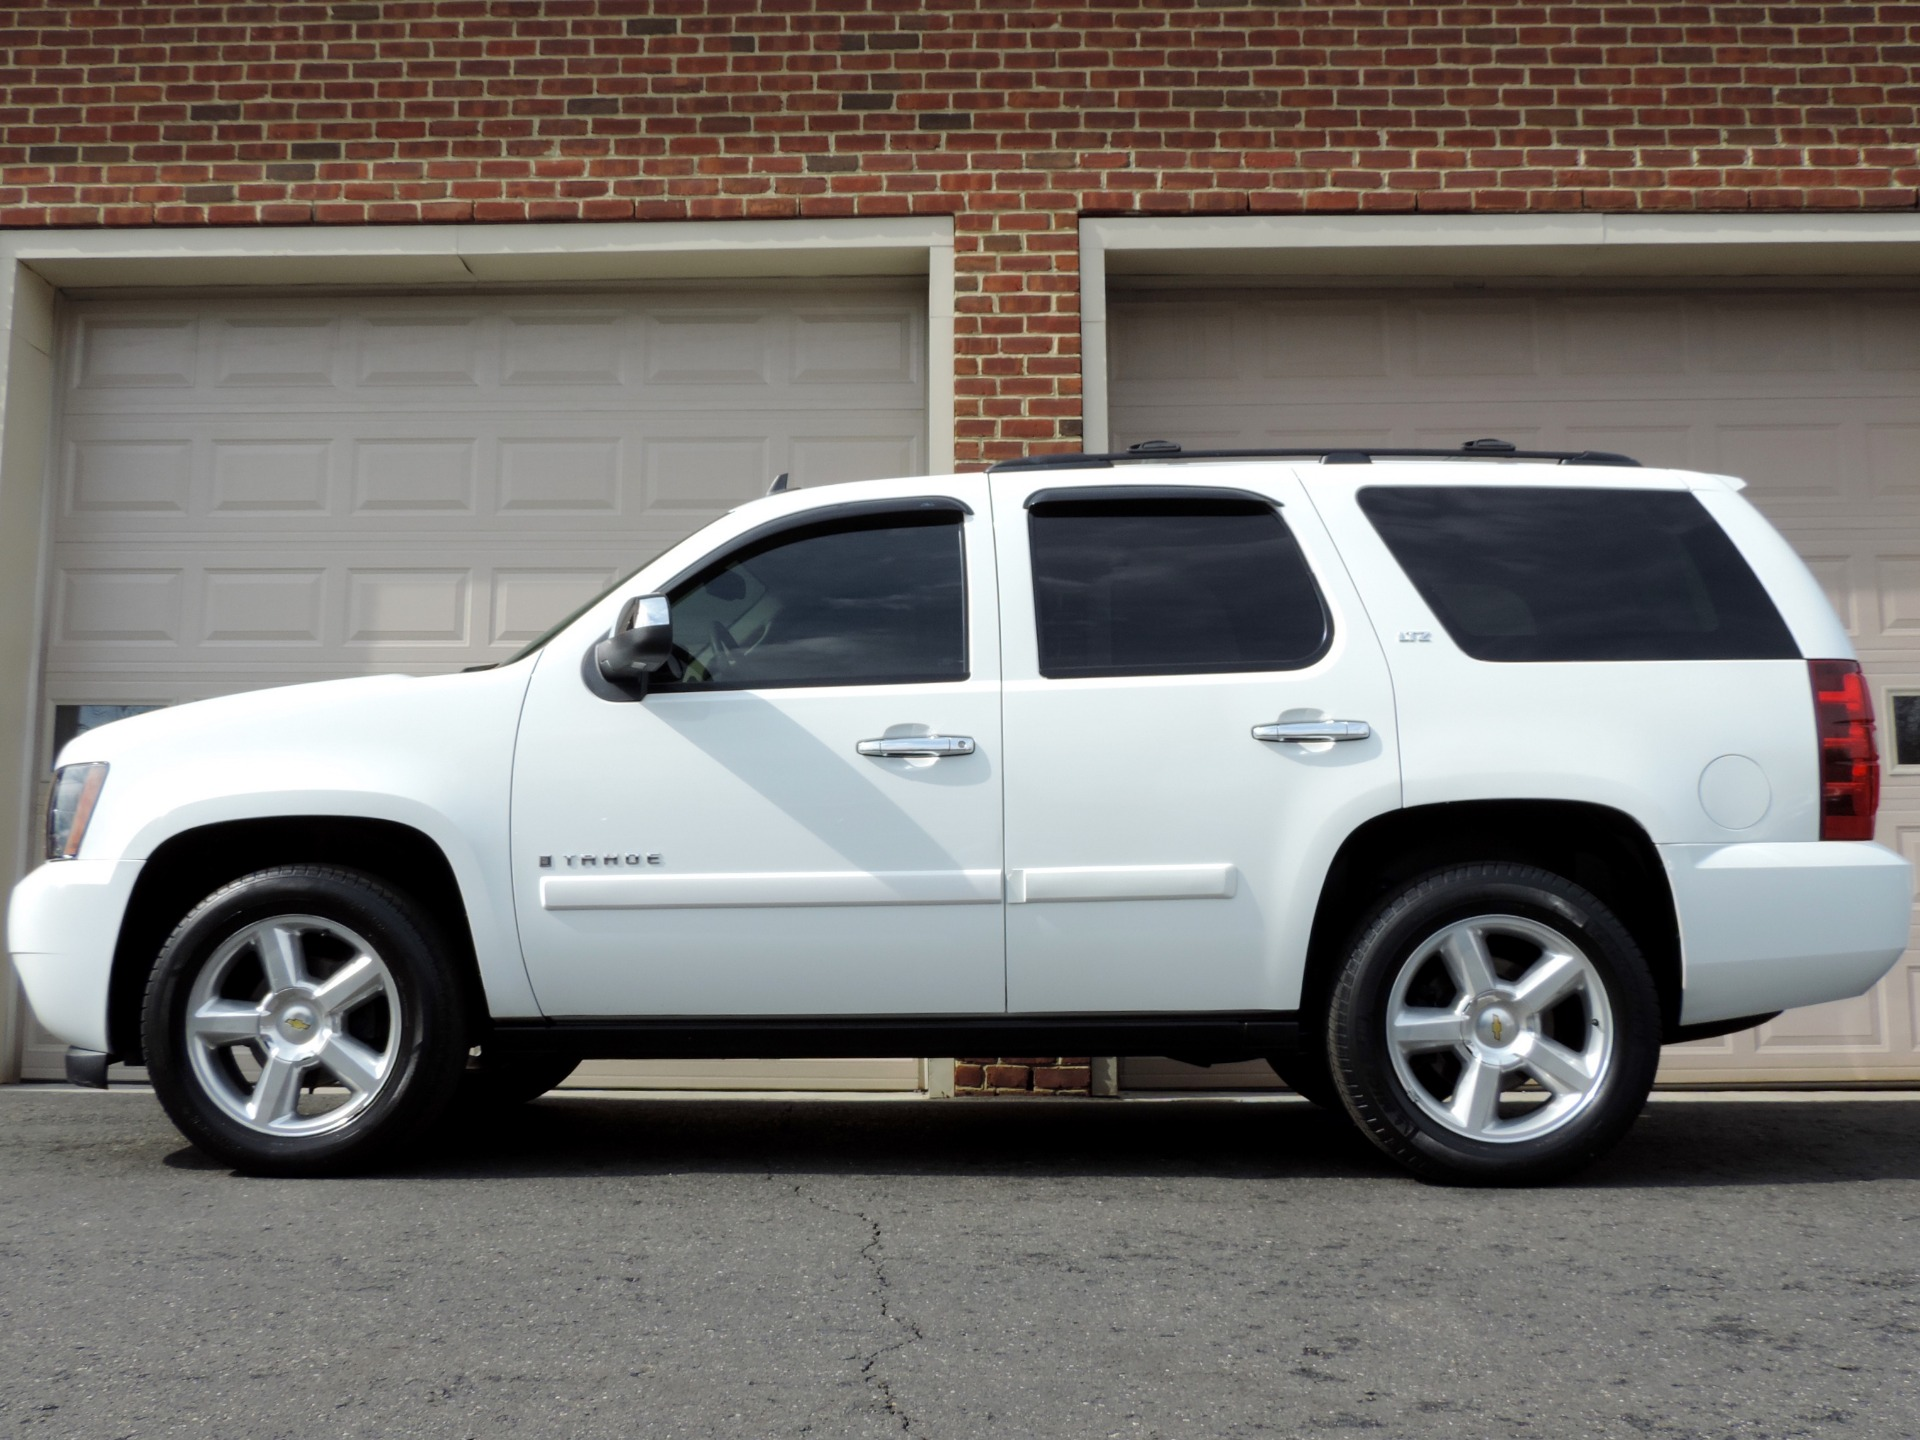 2007 Chevrolet Tahoe Ltz >> 2007 Chevrolet Tahoe LTZ Stock # 387144 for sale near Edgewater Park, NJ | NJ Chevrolet Dealer